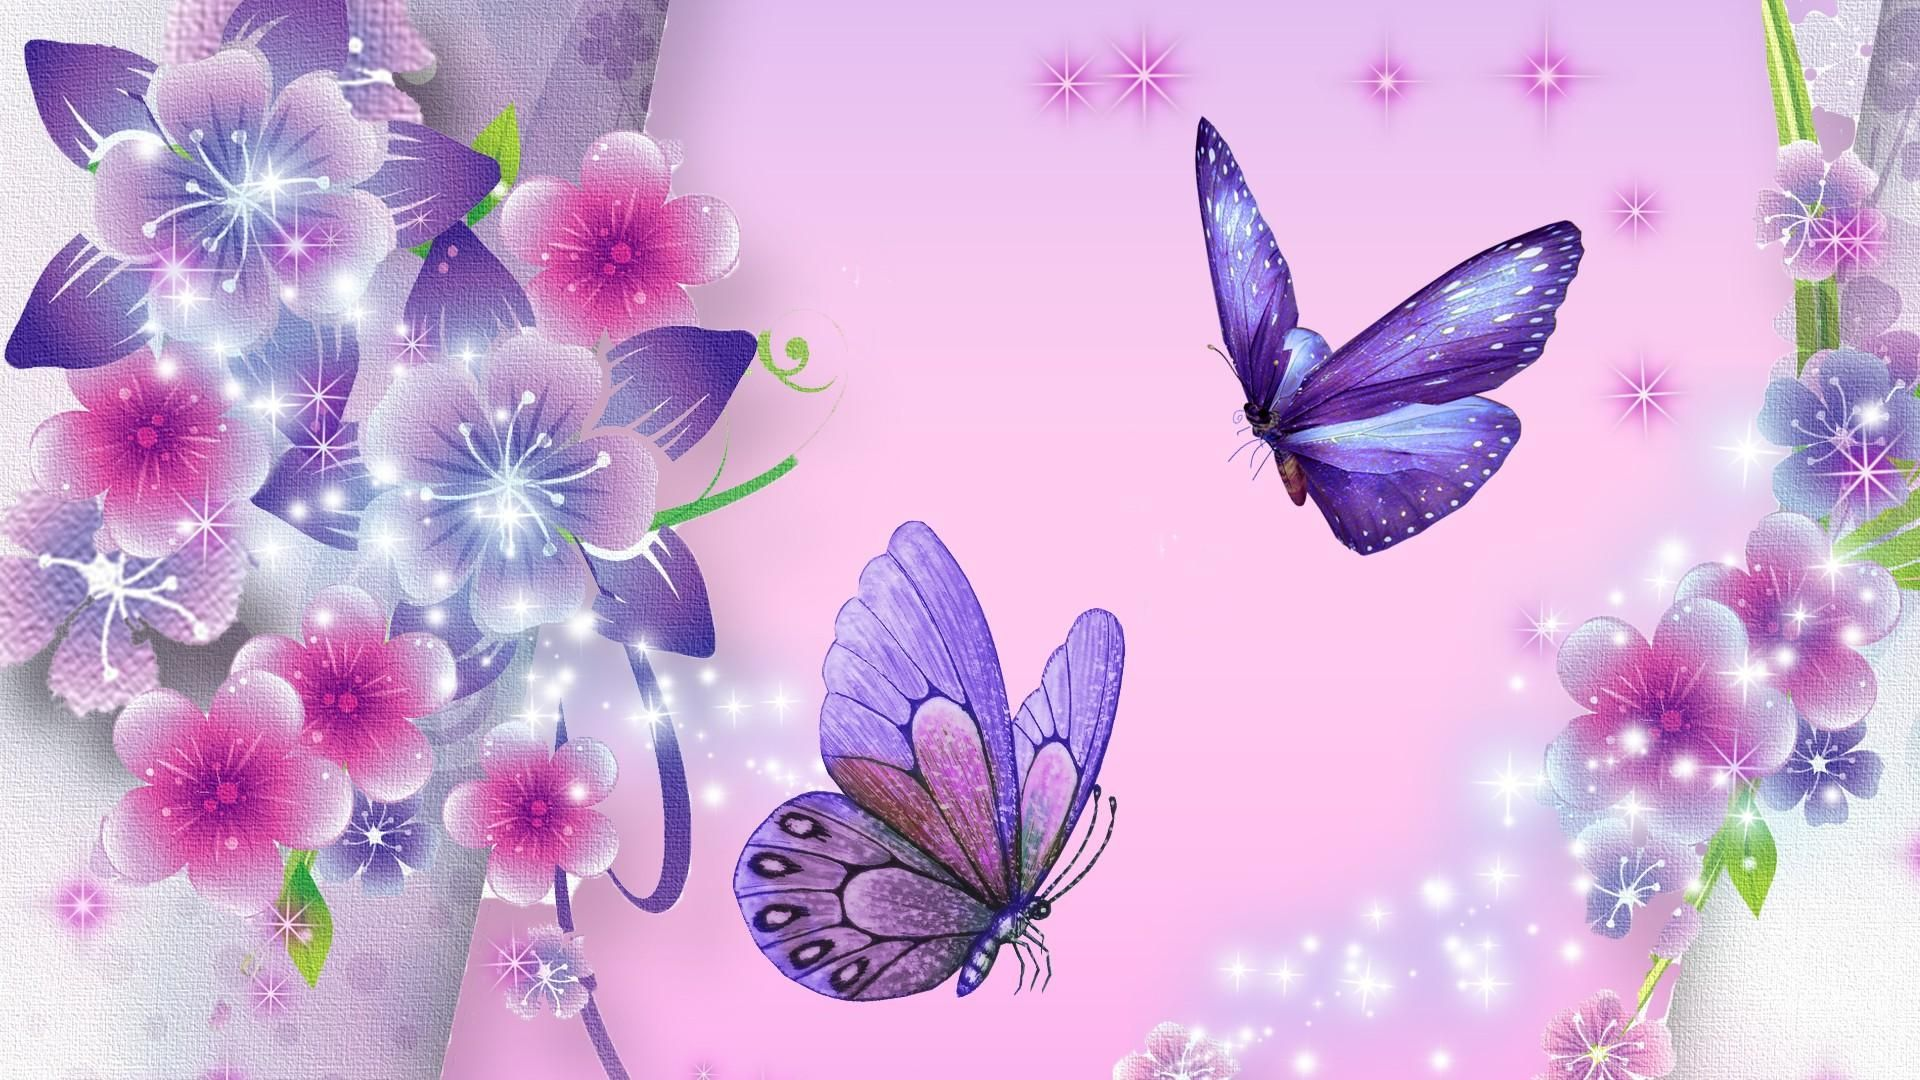 Beautiful Art Butterflies Wallpaper 4 Jpg 1920 1080 Butterfly